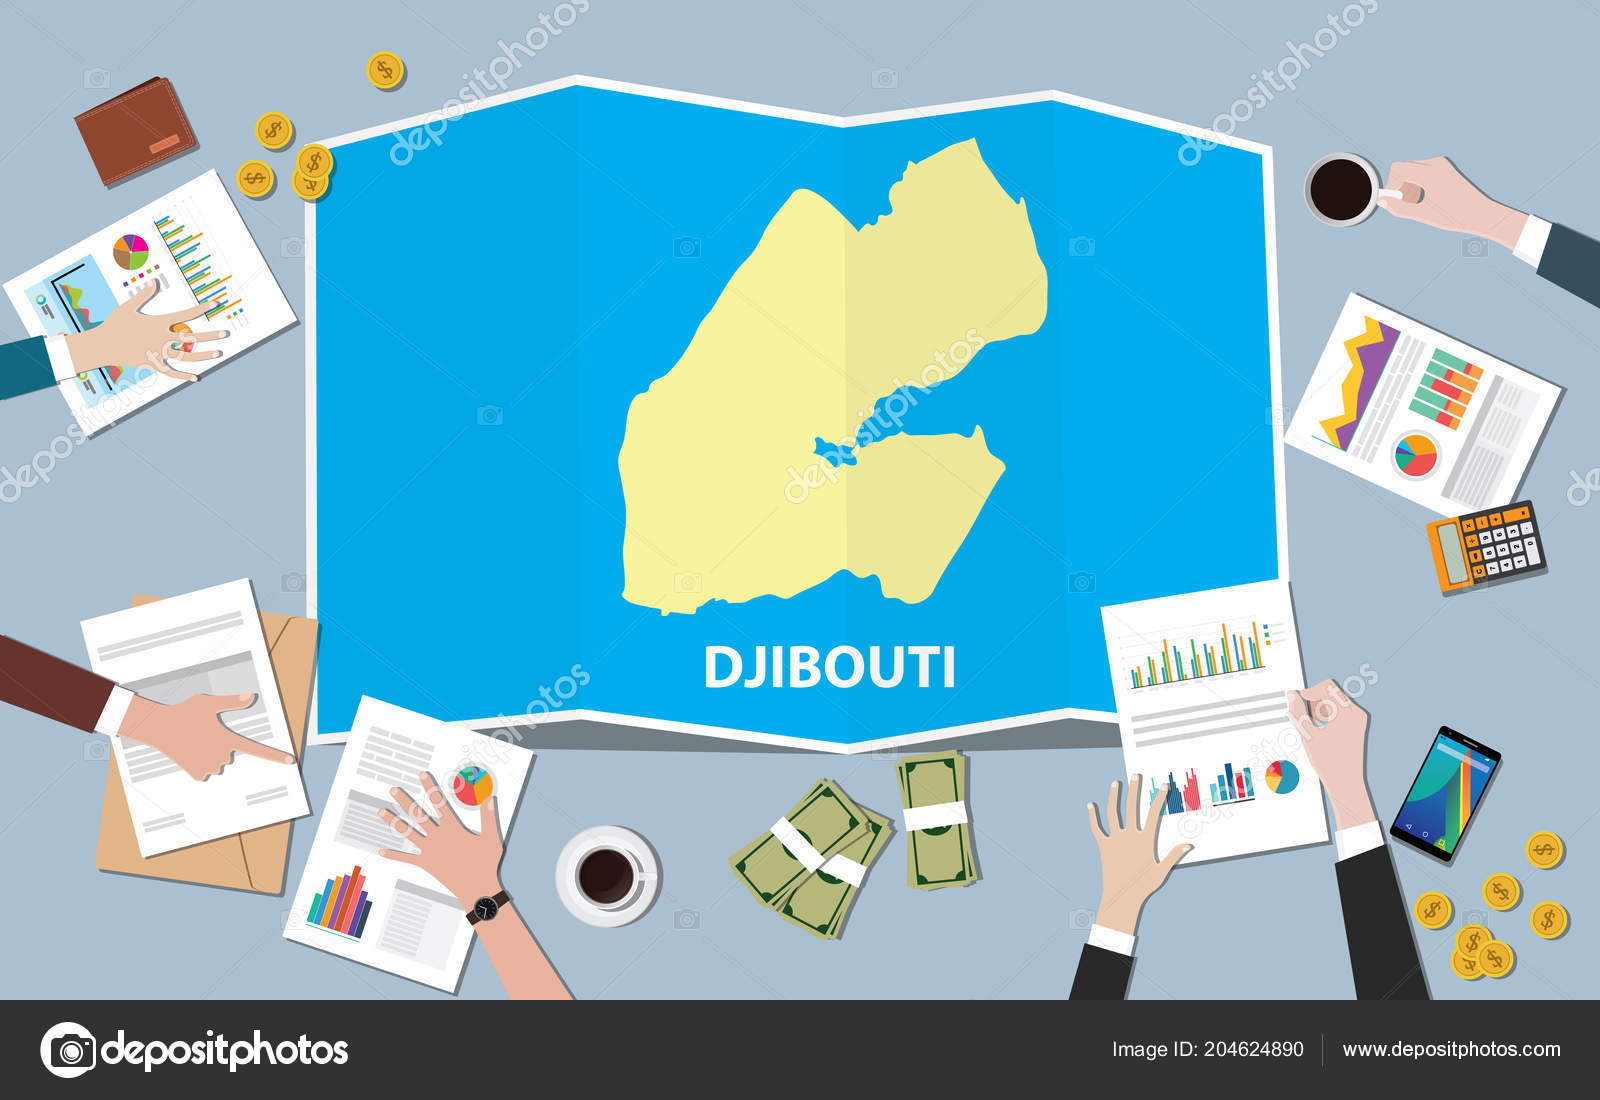 Djibouti Africa Economy Country Growth Nation Team Discuss Fold Maps ...